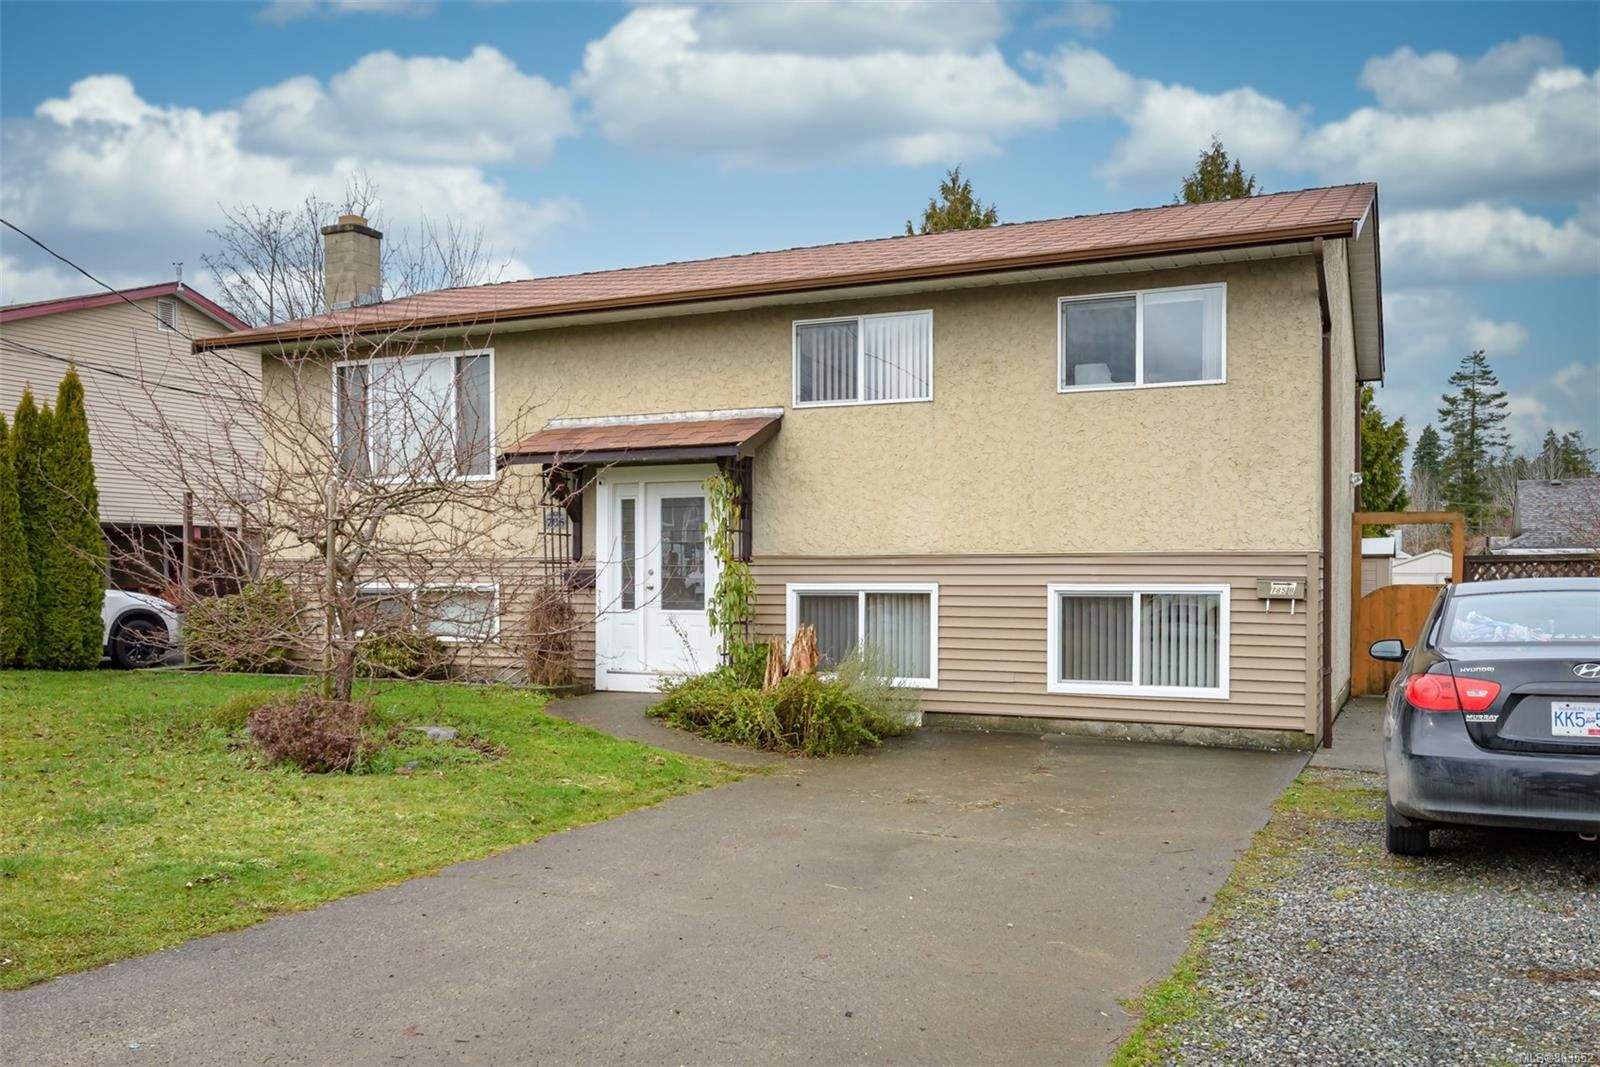 Main Photo: 785 26th St in : CV Courtenay City House for sale (Comox Valley)  : MLS®# 863552